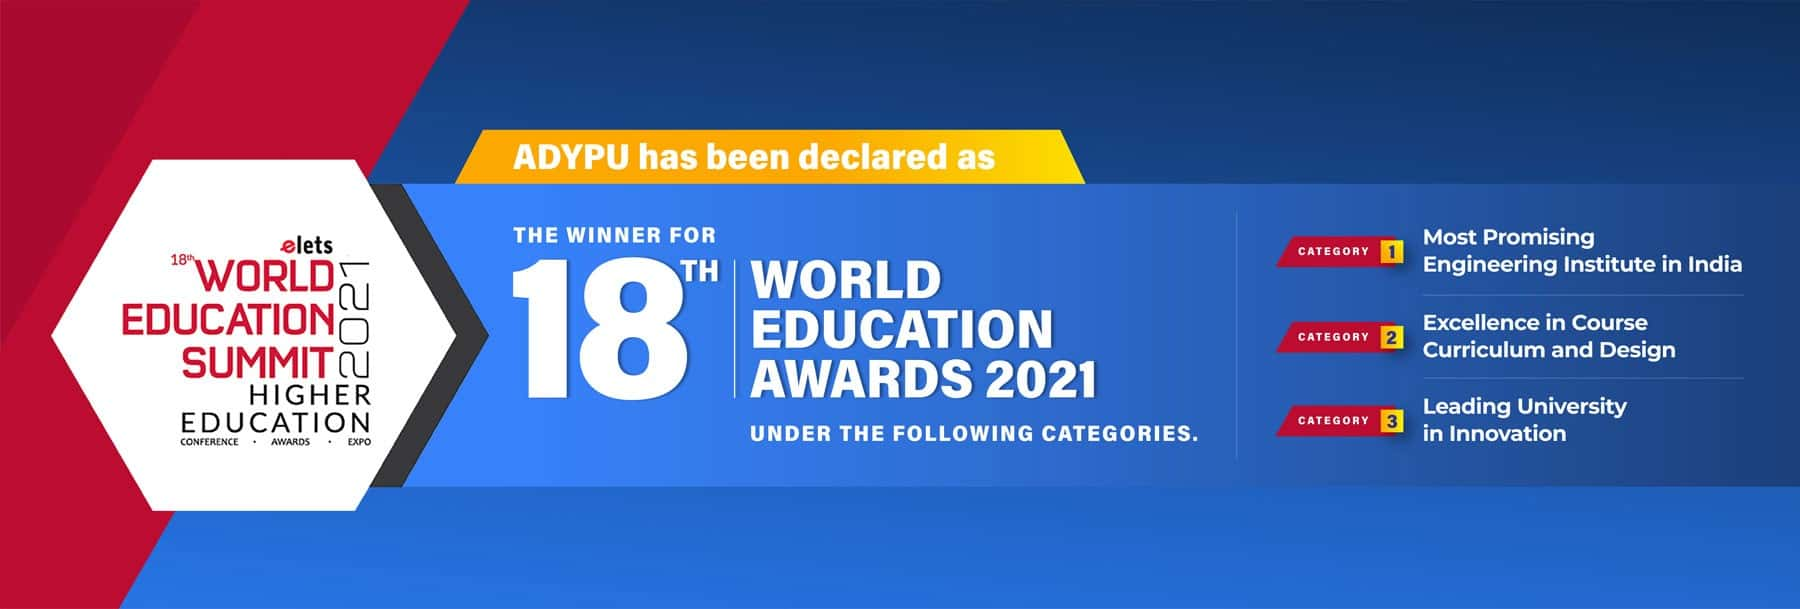 ADYPU th World Education Awards Banner